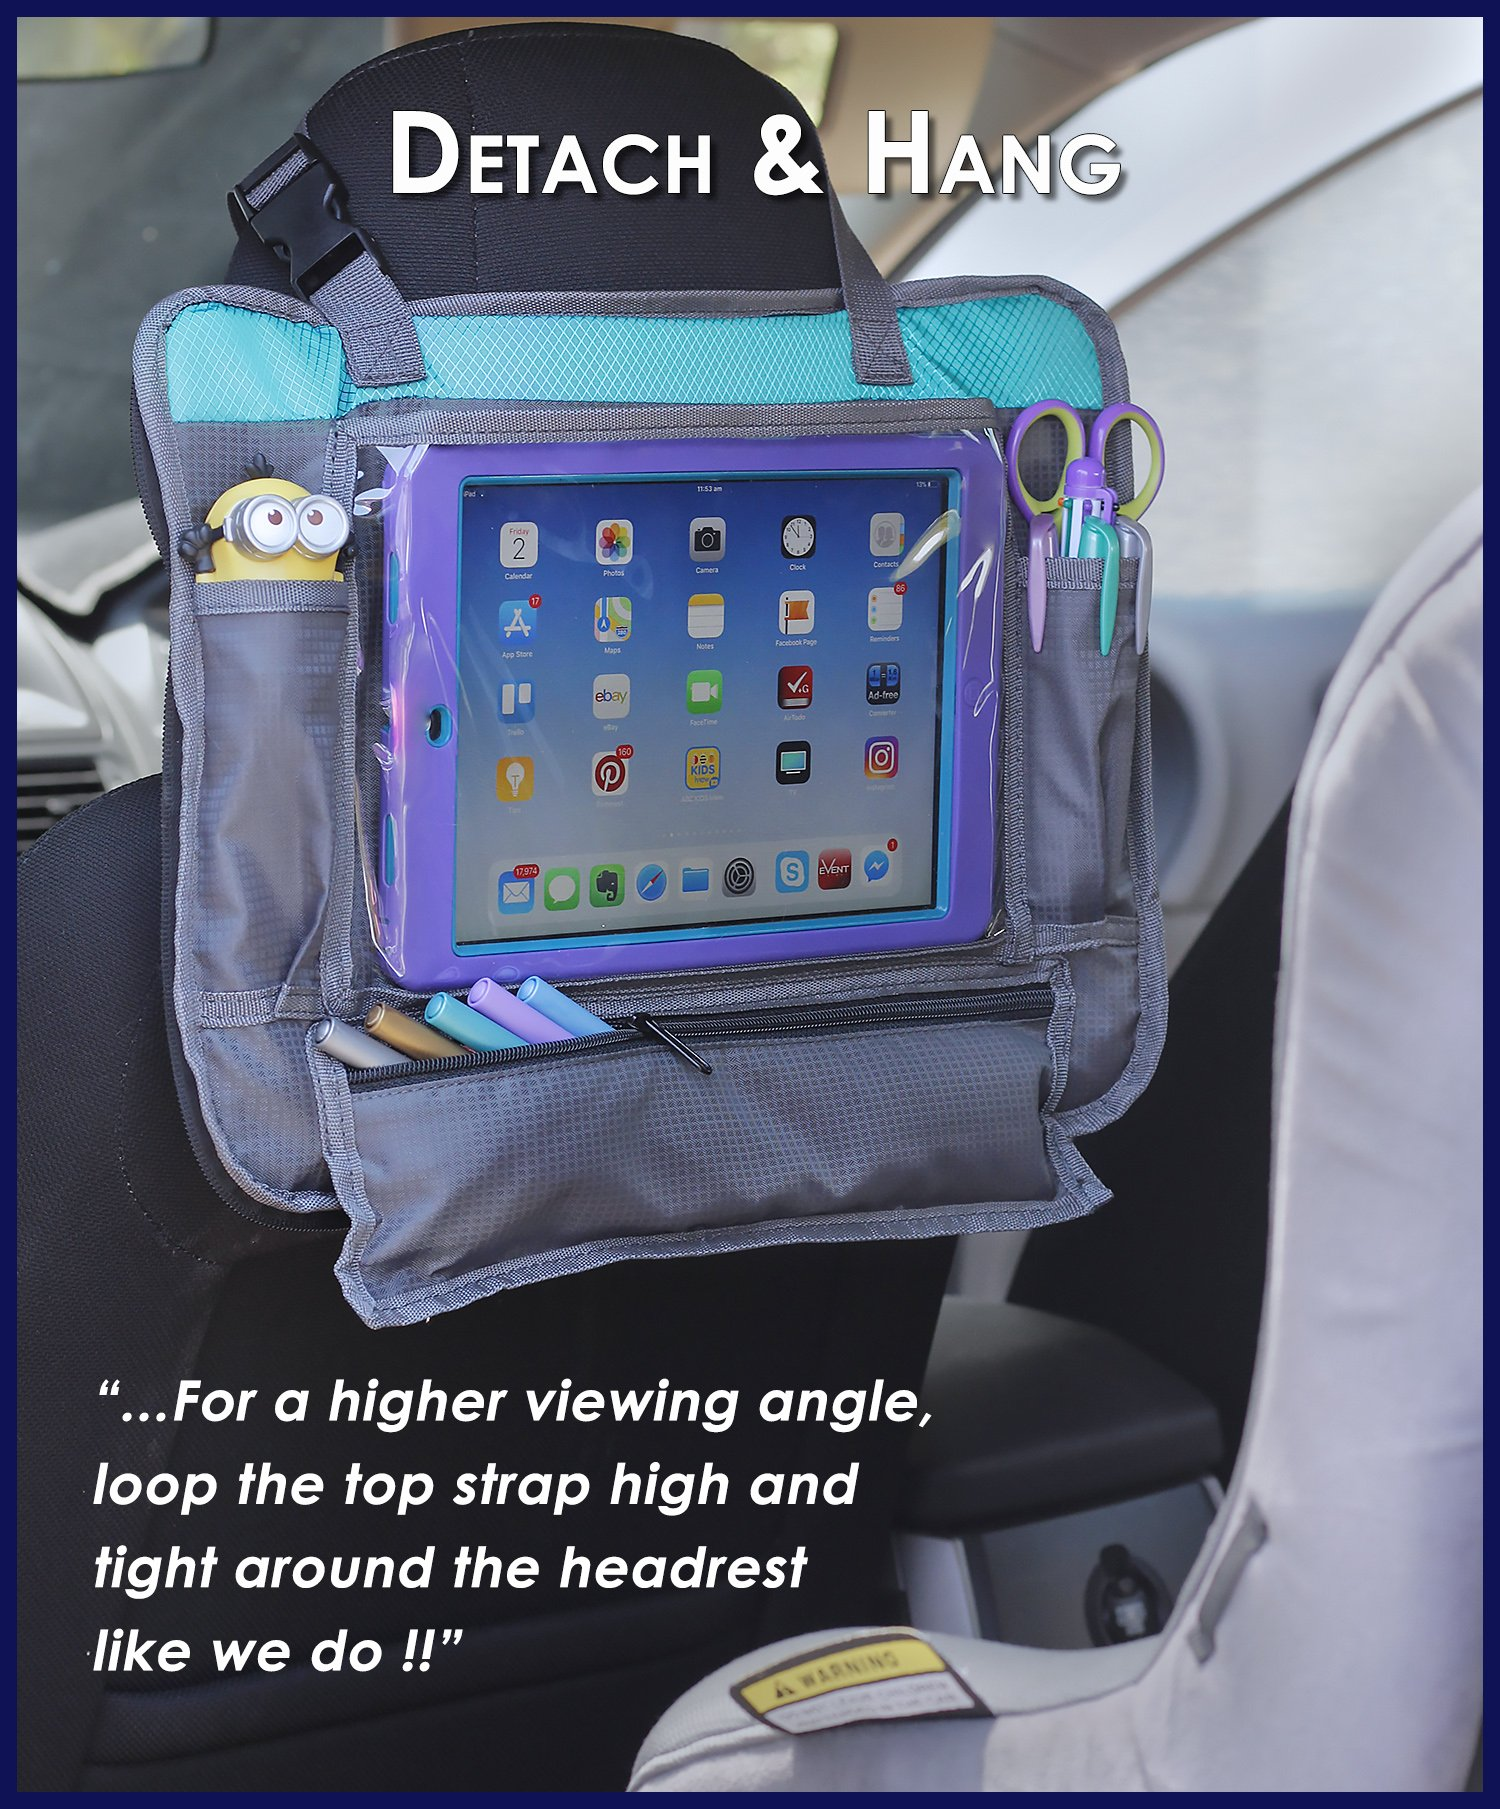 ORGANIZED EMPIRE's Detachable 4 in 1 Car Seat Travel Tray, Storage Organizer, Carry Bag & Tablet Holder for kids all in one. Most stable back seat Snack Tray on the market, no balancing required by Organized Empire (Image #3)